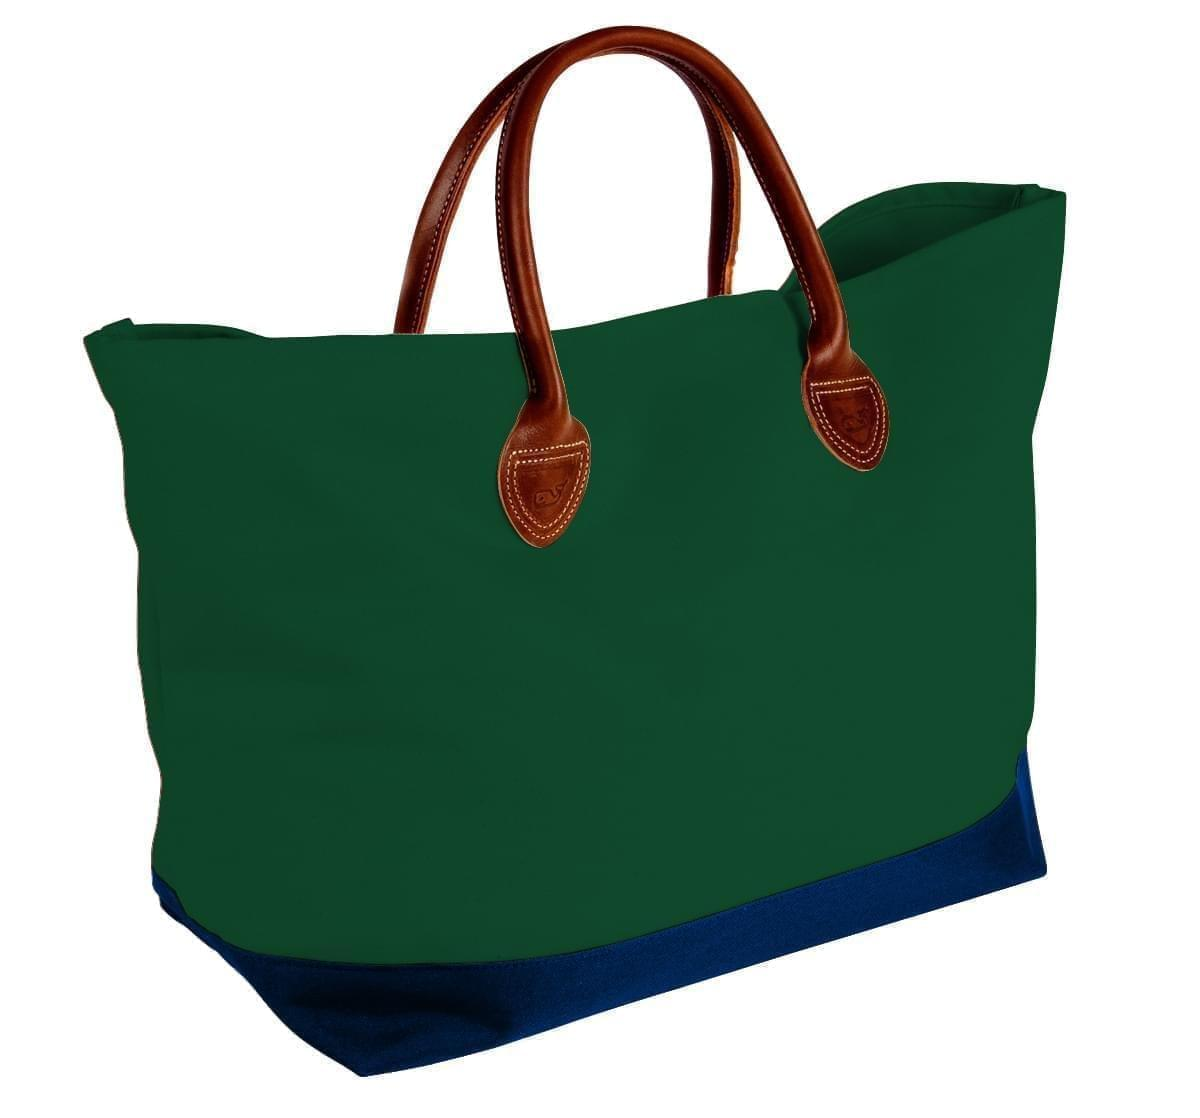 USA Made Canvas Leather Handle Totes, Hunter Green-Navy, 10899-II9